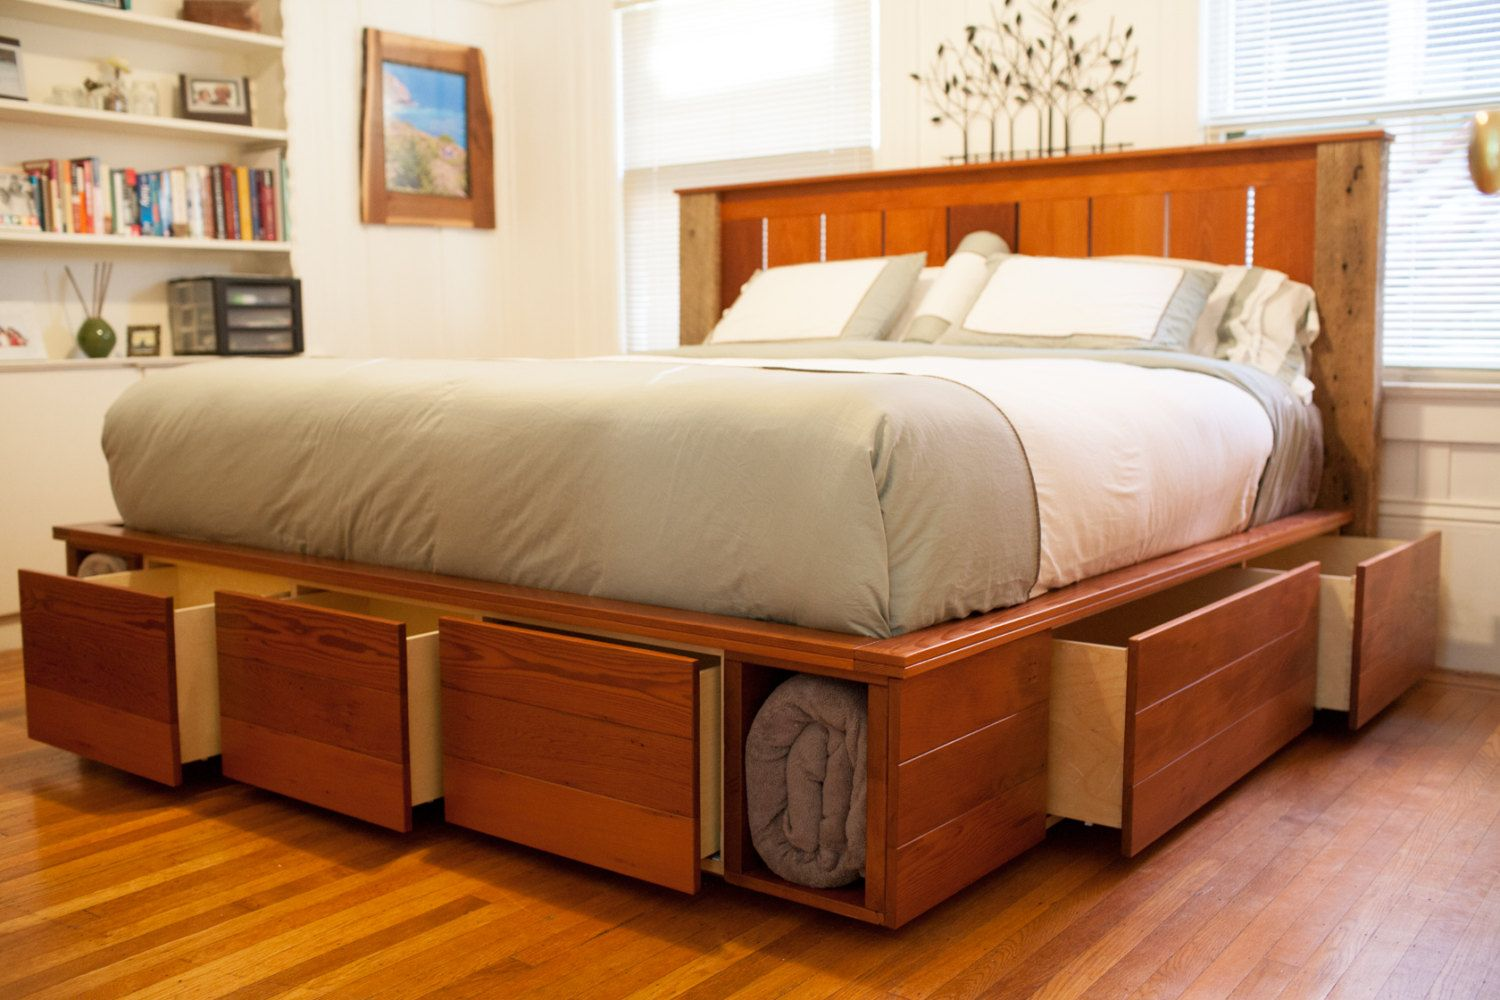 Platform Bed Woodworking Plans You Can Build This King Size Bed Which Features A Royal Am Bed Frame With Storage Bed Frame With Drawers King Size Storage Bed